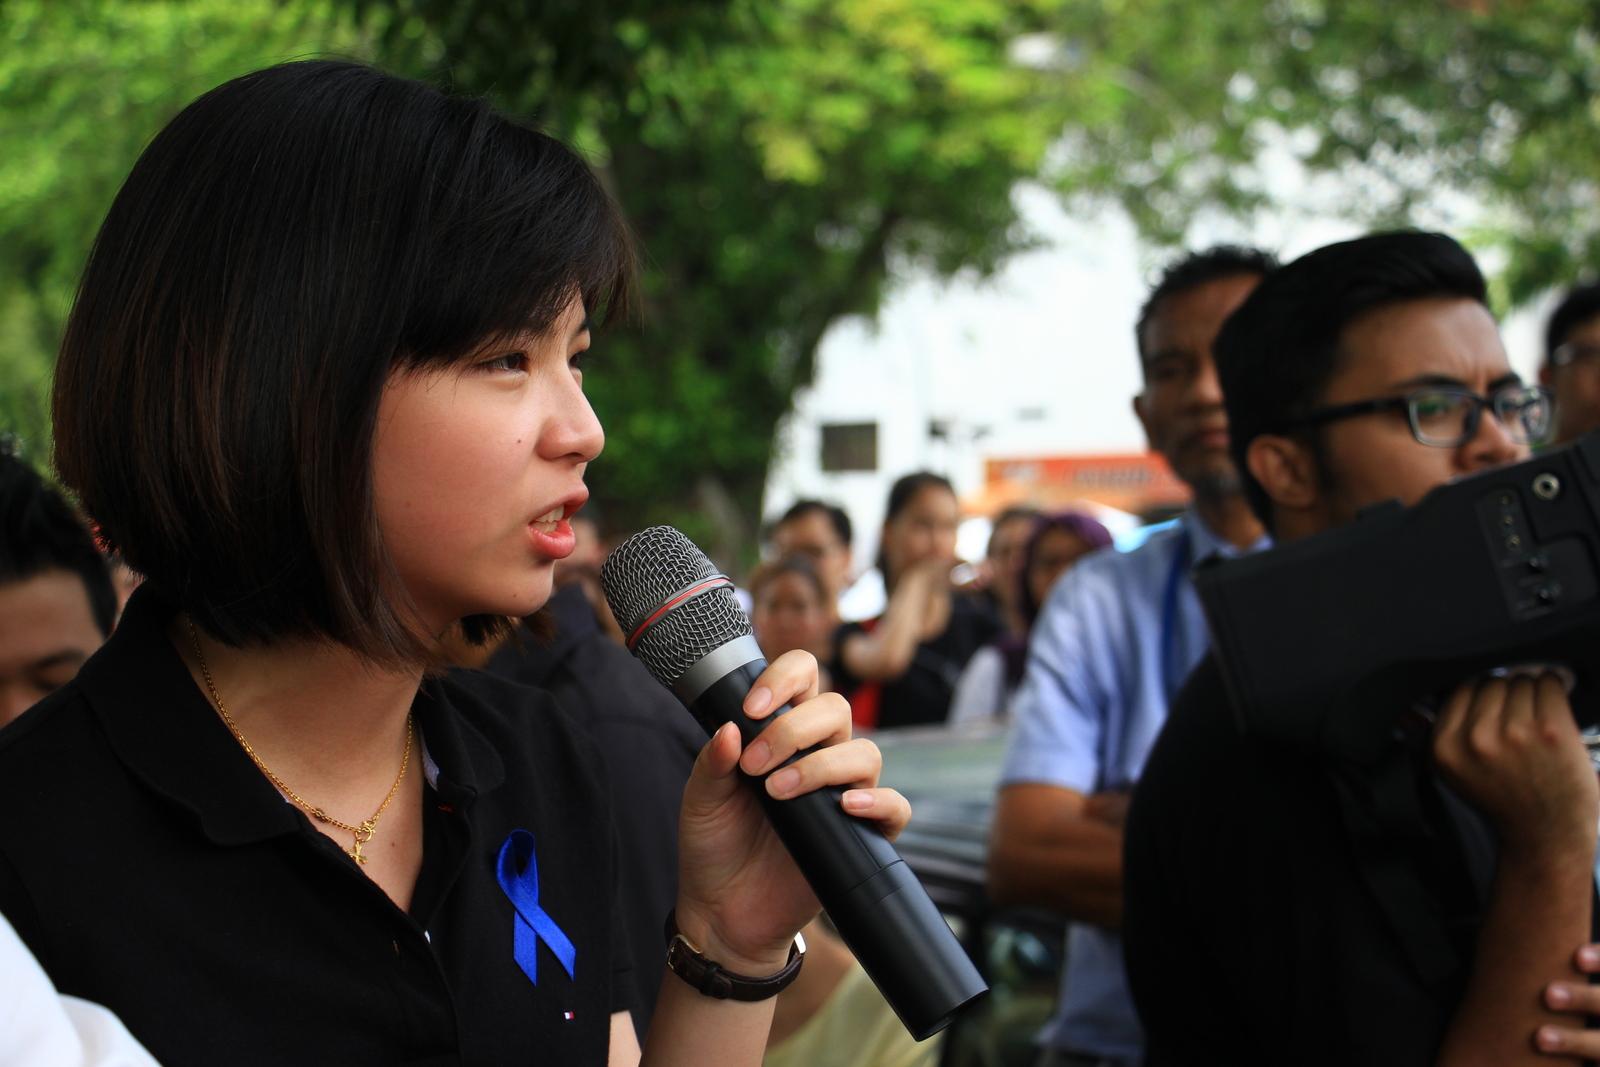 Law student representative Fiona Lim giving a speech, she wears a blue ribbon in solidarity with the students' campaign for freedom of expression